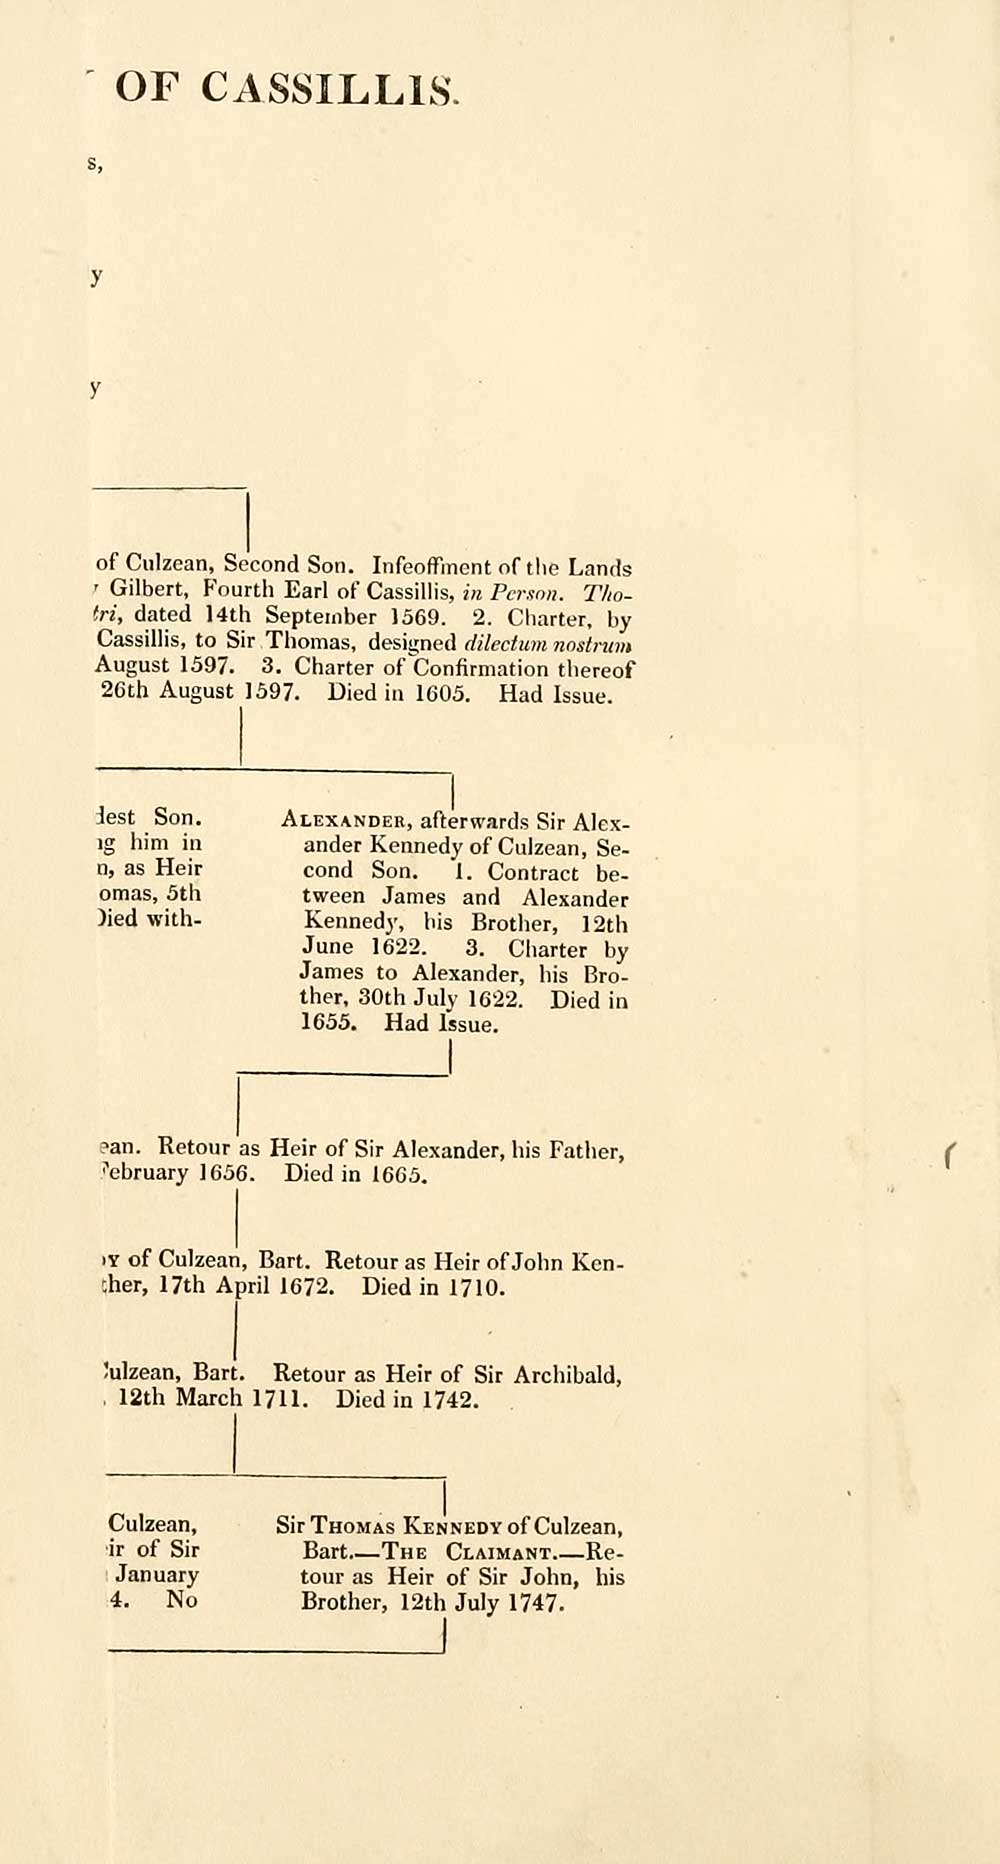 12) Folded genealogical chart - Cassillis peerage, 1760-4